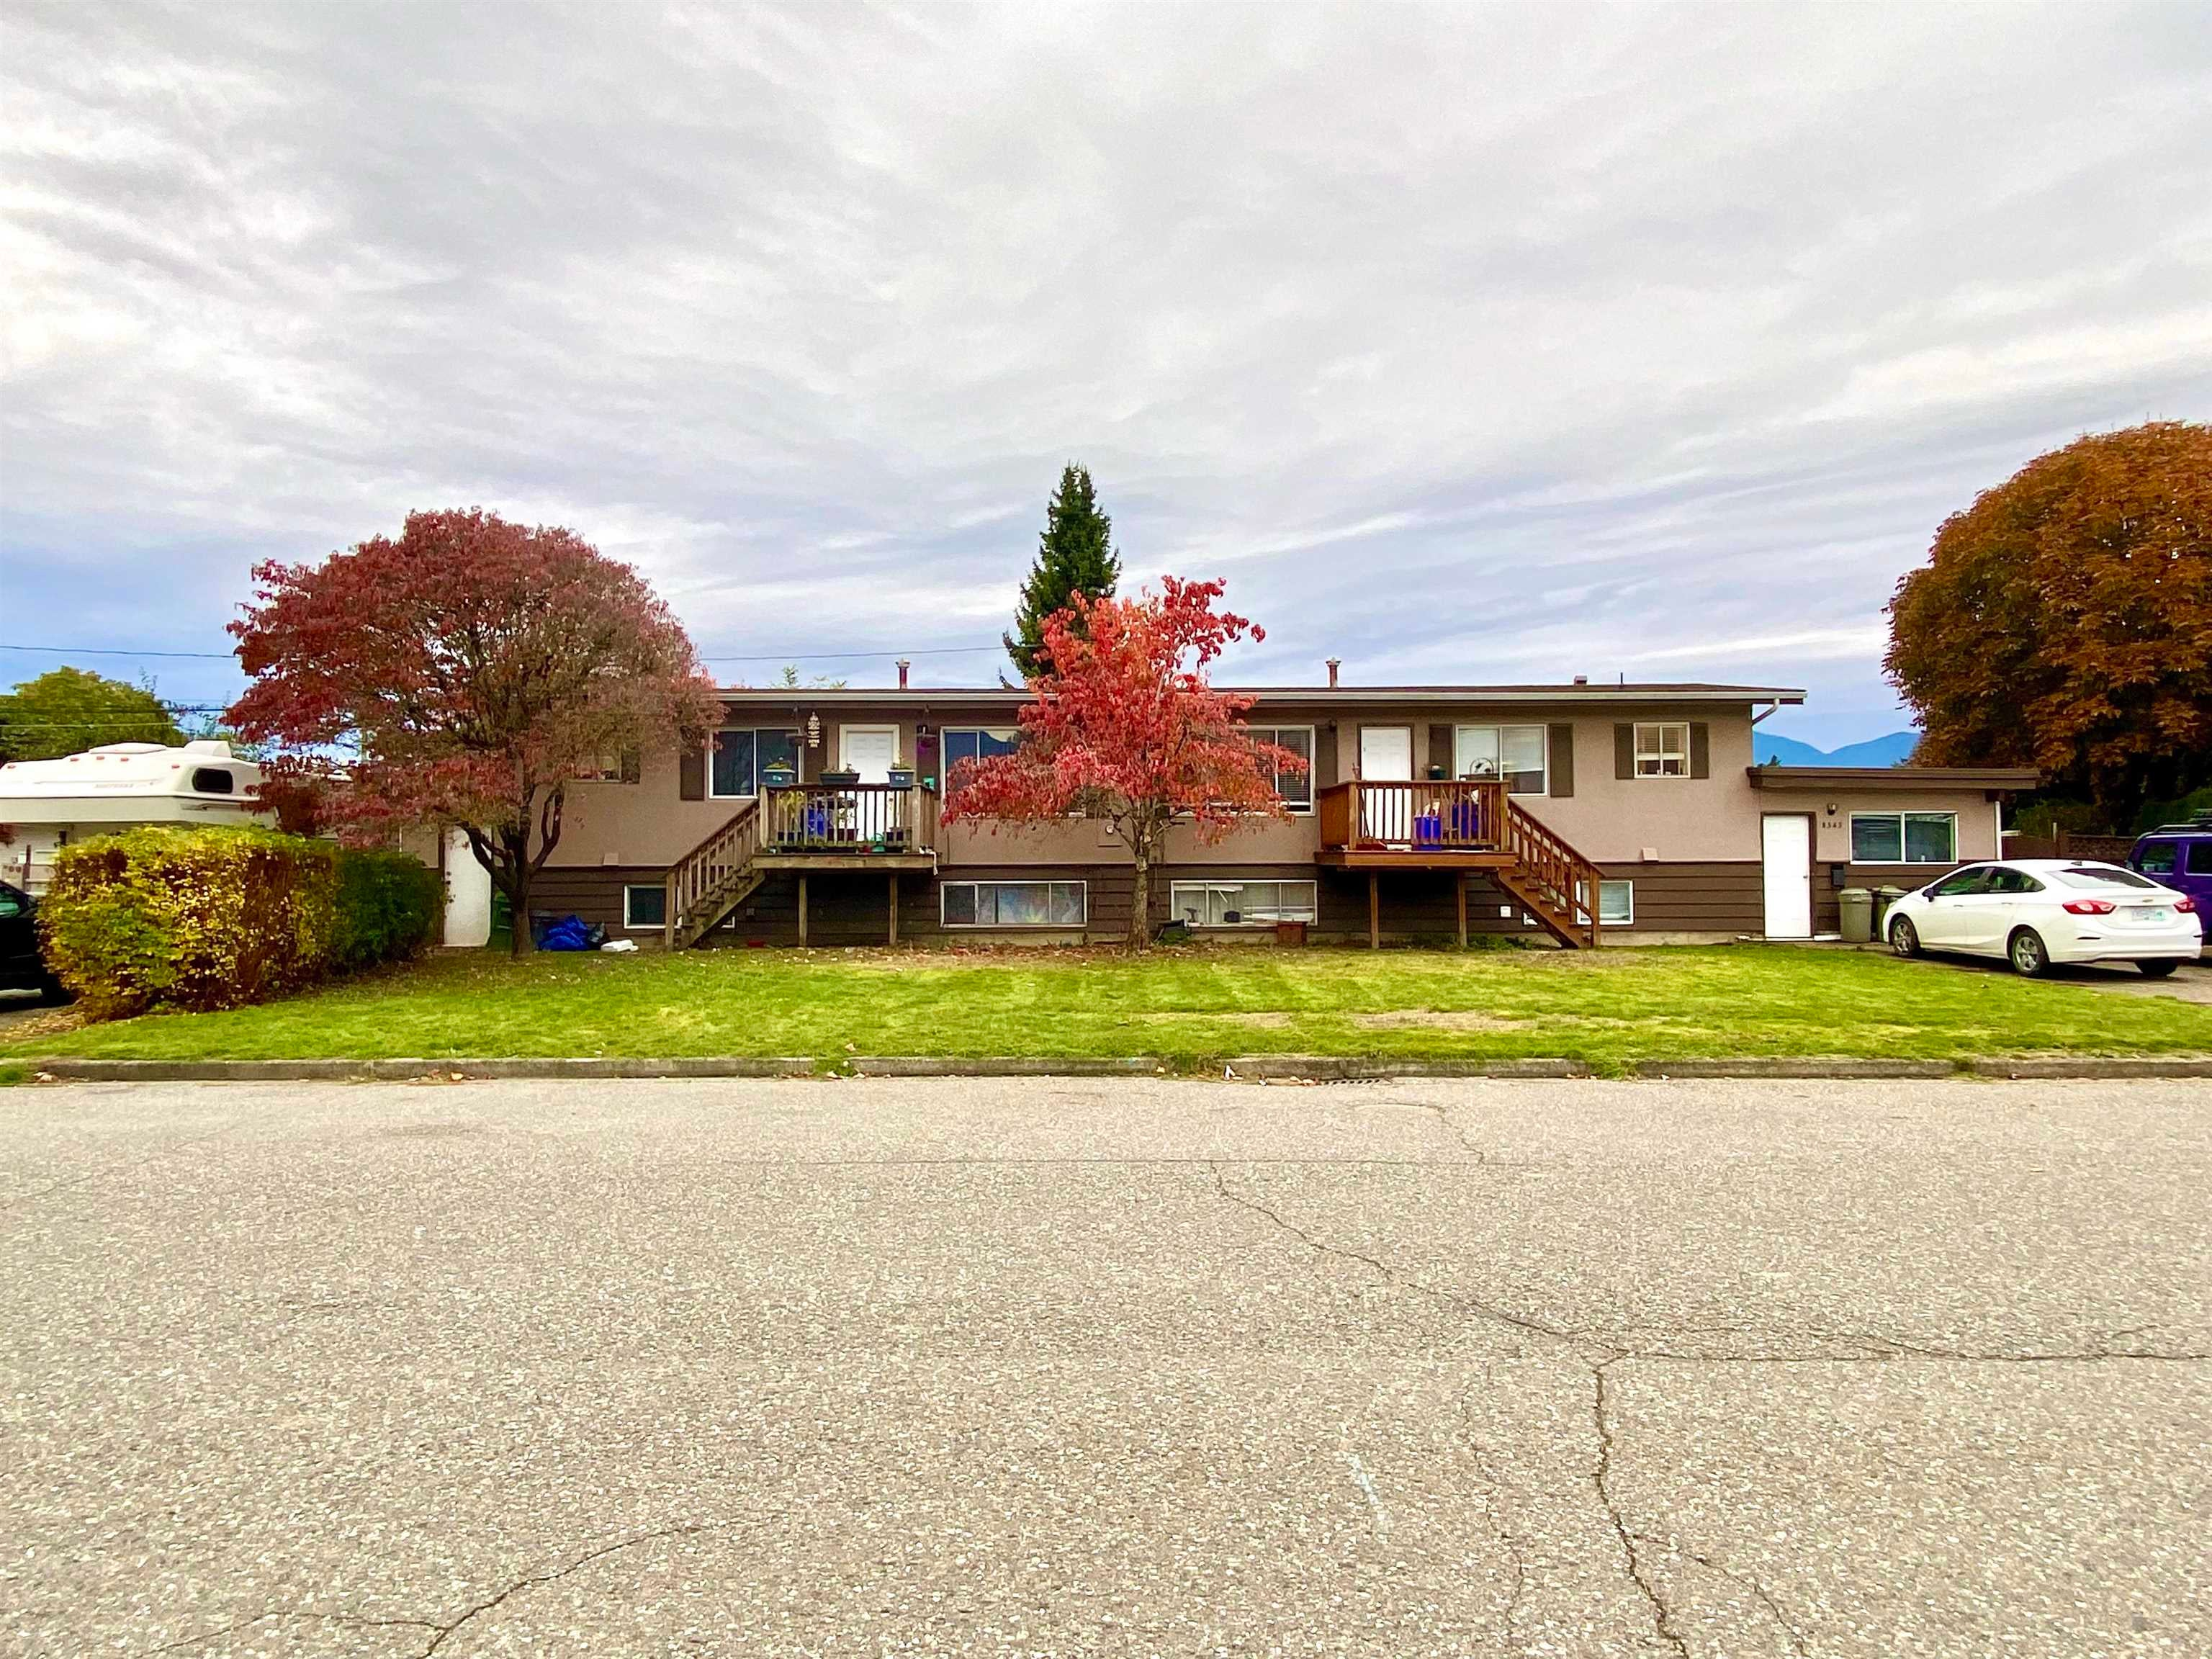 8545 SOUTHLANDS CRESCENT - Chilliwack E Young-Yale Duplex for sale, 8 Bedrooms (R2627816) - #1